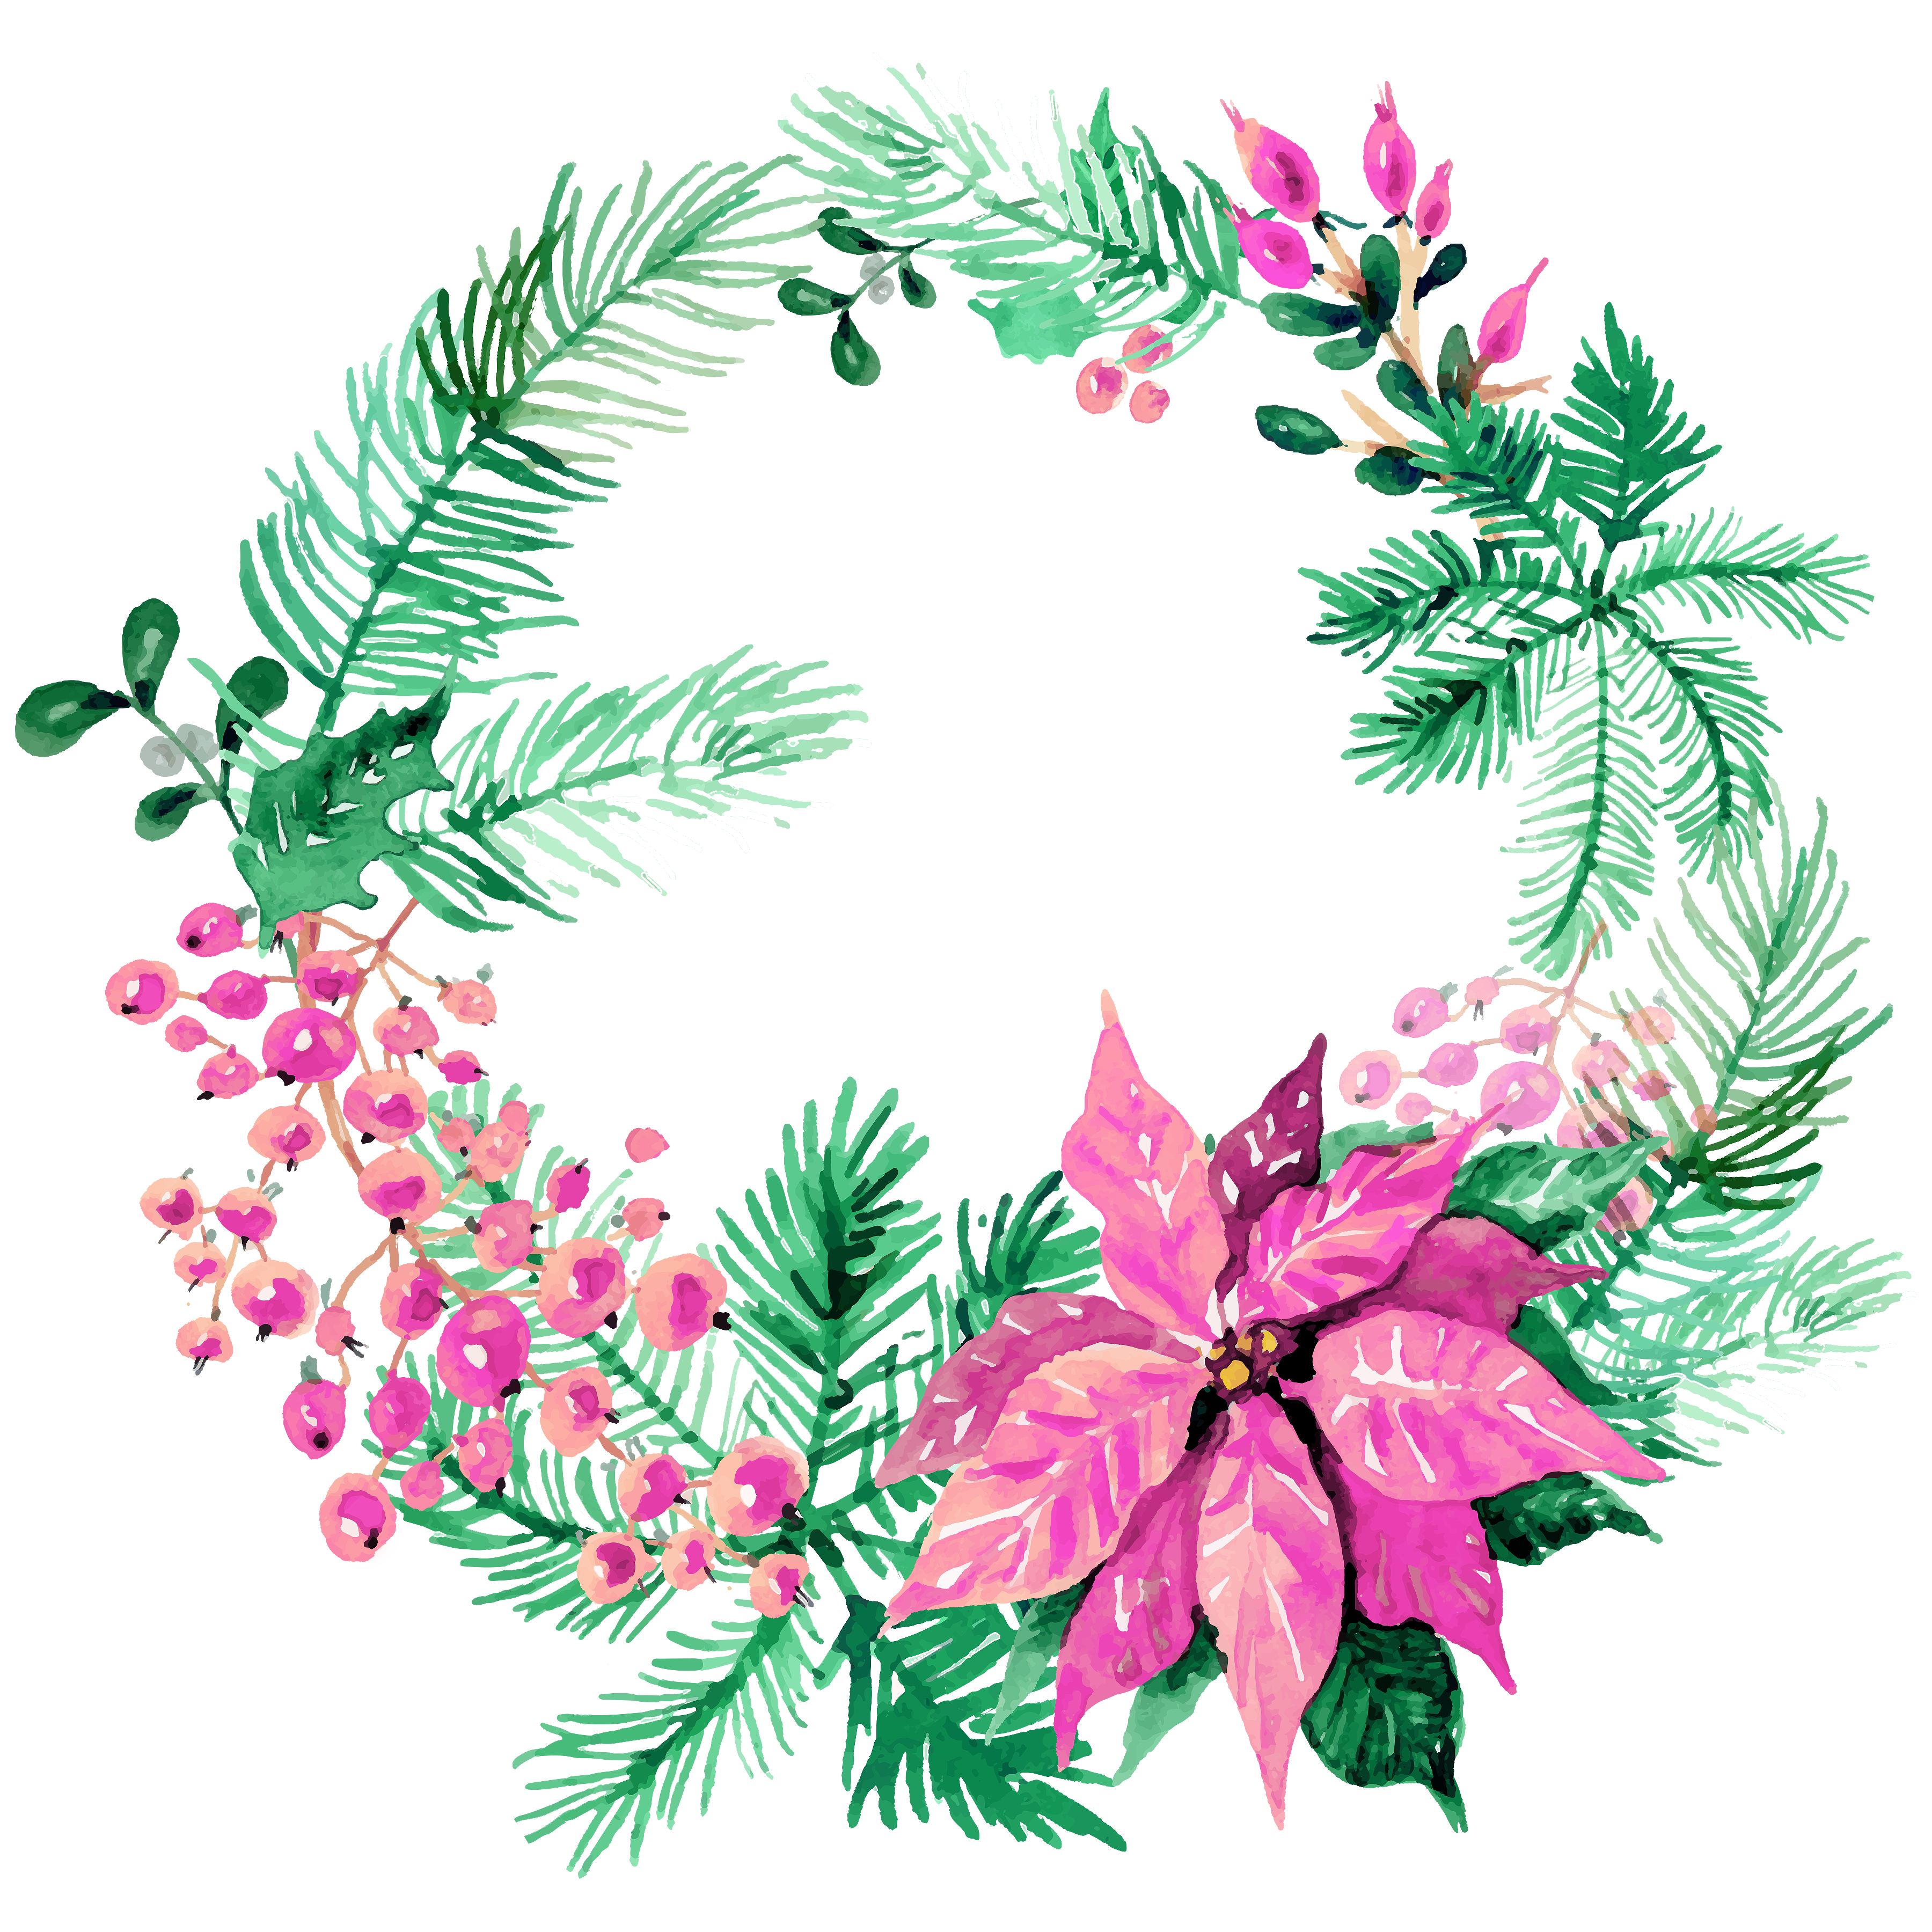 Free Christmas Watercolor Wreaths Images 4 Png 3600 3600 Christmas Watercolor Watercolor Christmas Cards Flower Drawing Design